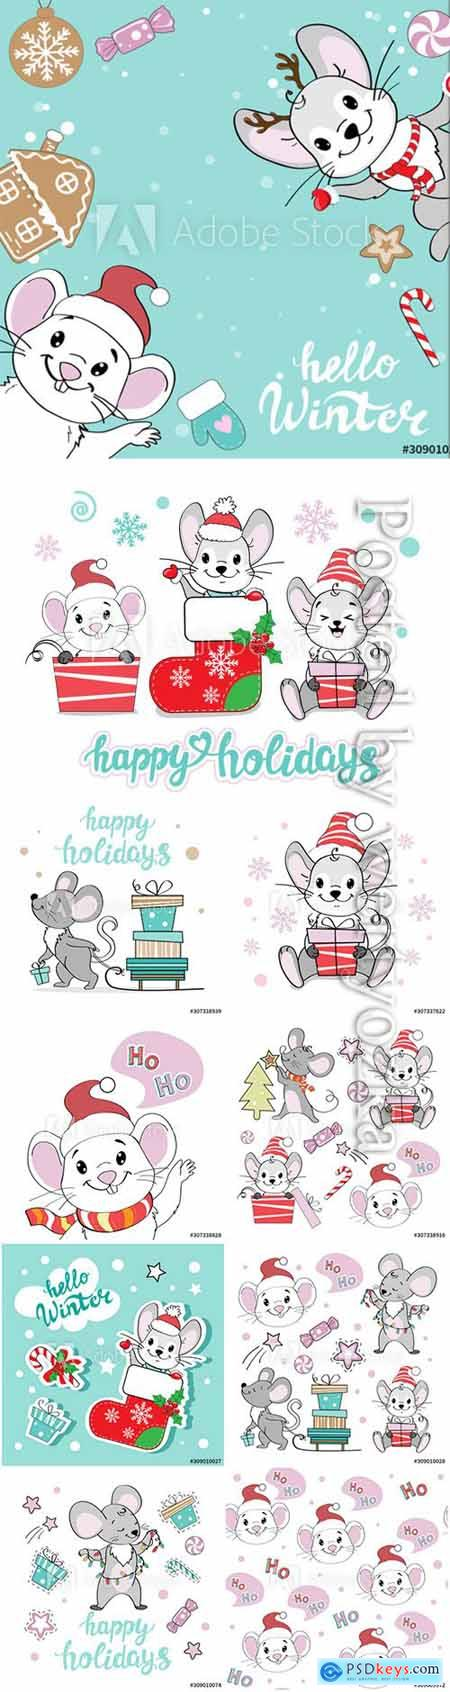 Christmas illustration set with Christmas mice on a